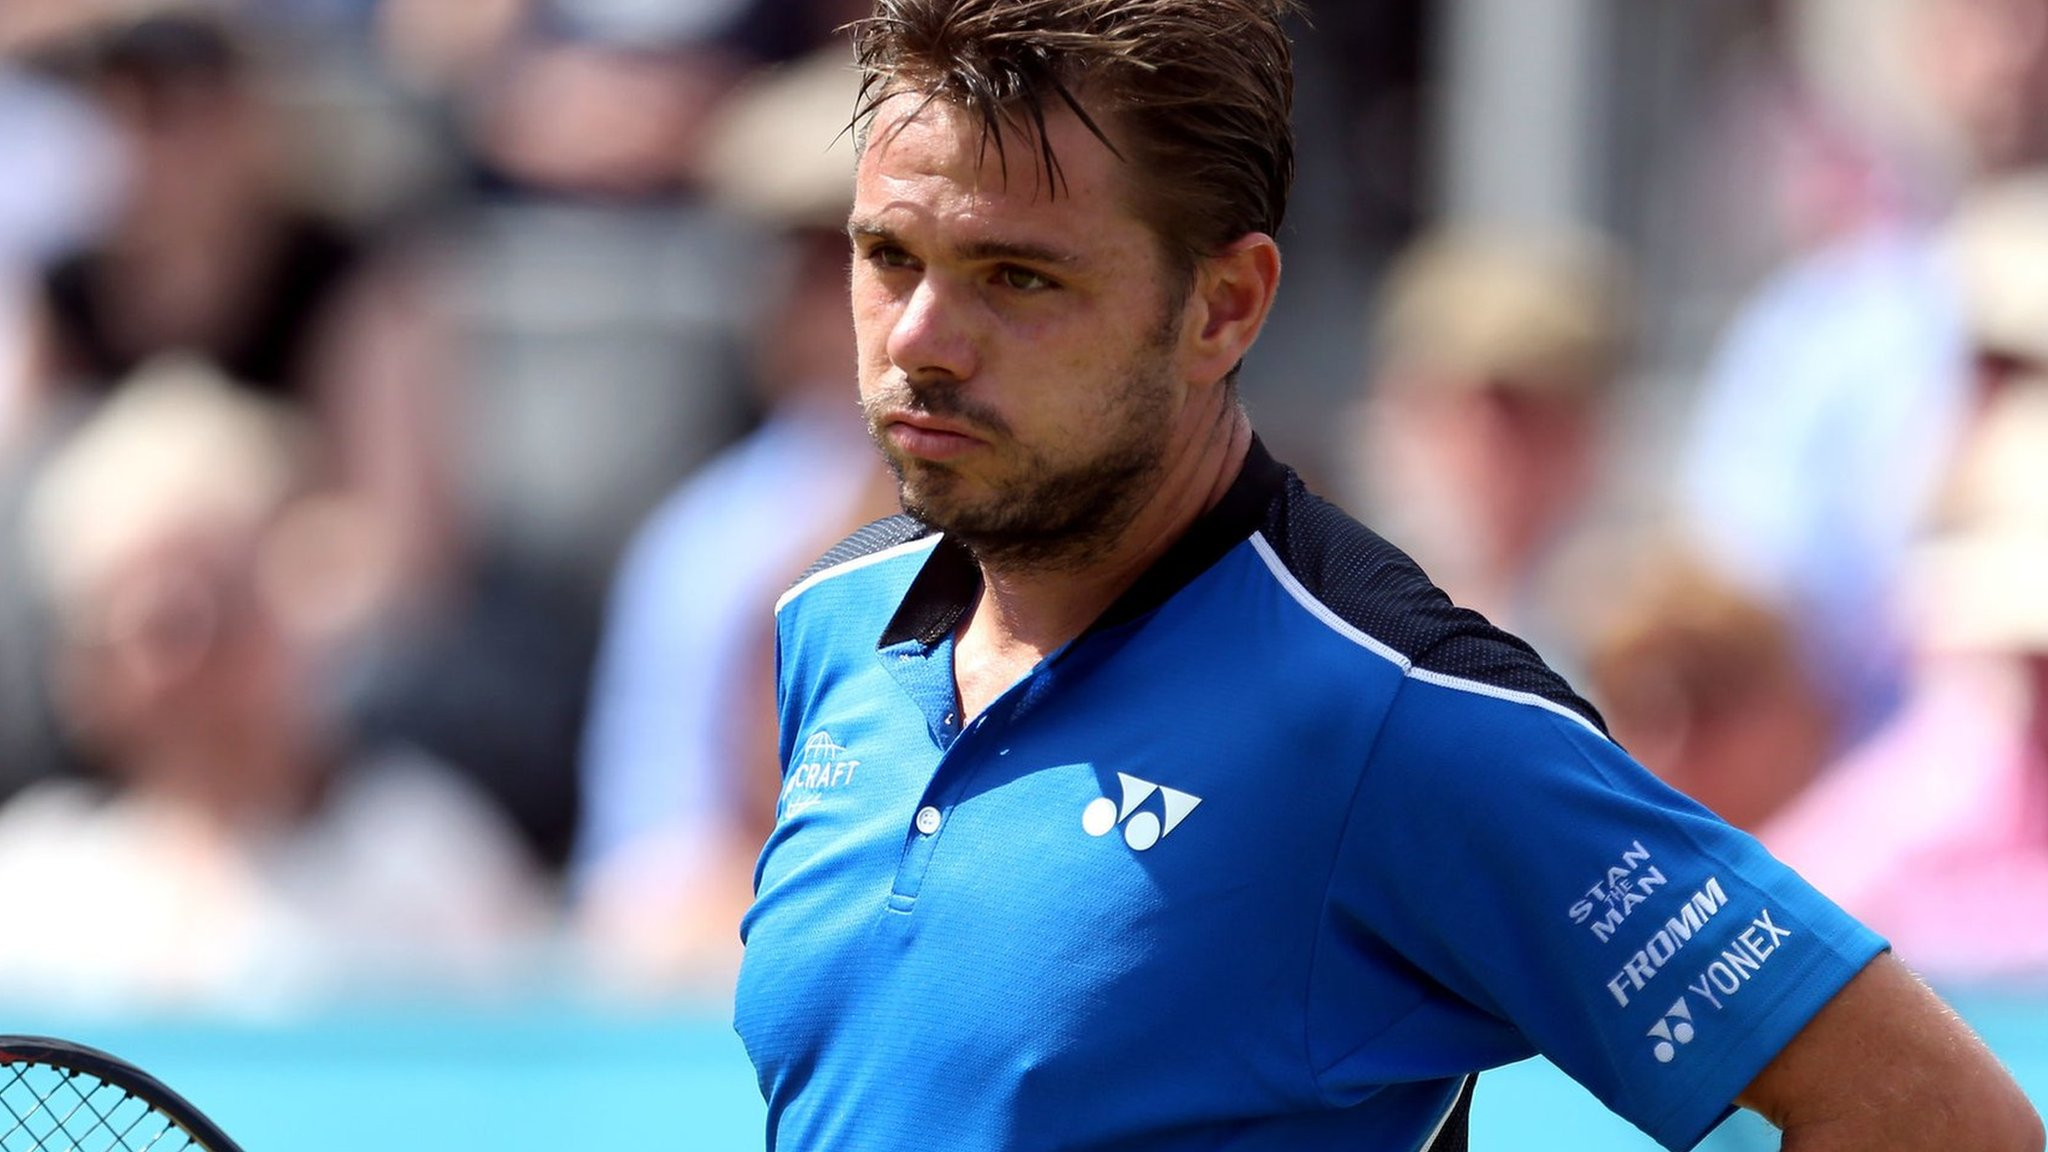 Fever-Tree Championships 2018: Stan Wawrinka beaten by Sam Querry at Queen's